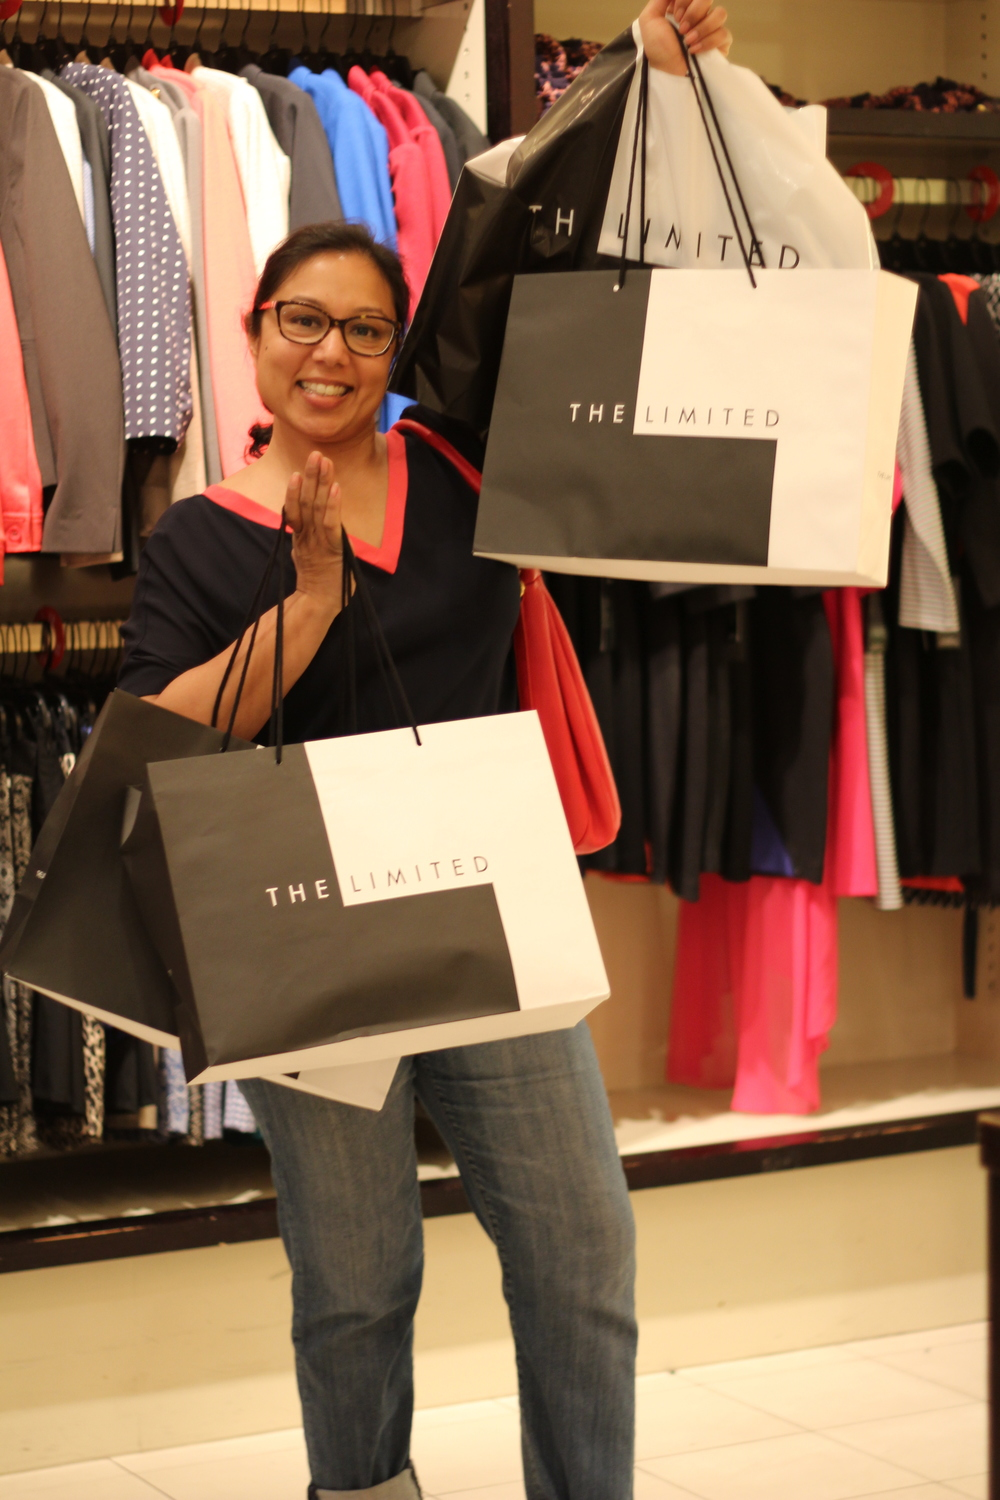 The enthusiastic Rupali Jain won a gift card at last year's event and headed home with a pretty impressive stash. Will she win again? Or- will it be YOU?